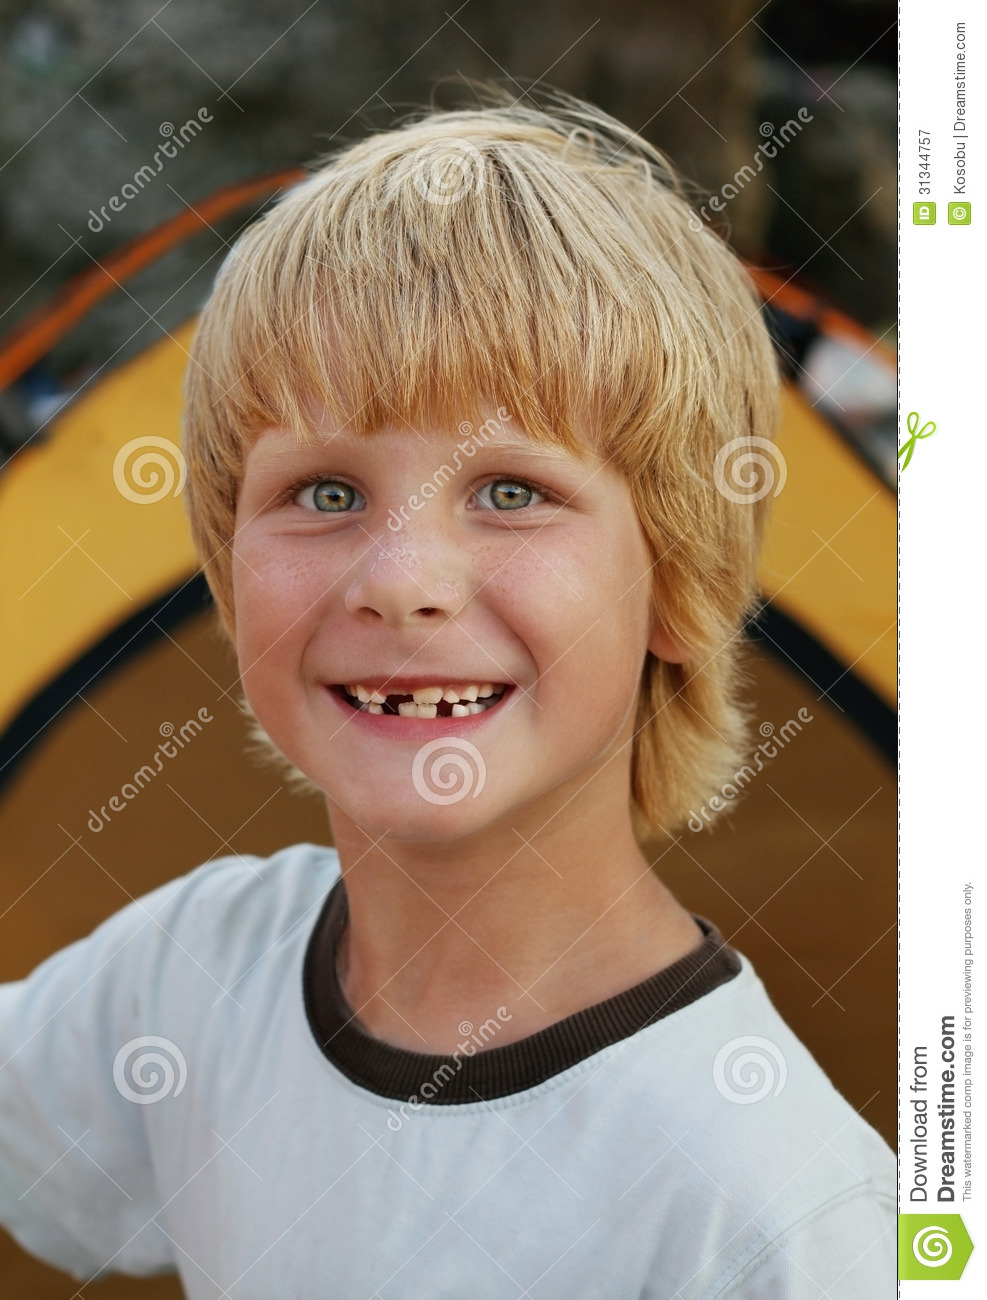 Portrait Of Young Smiling Boy Royalty Free Stock